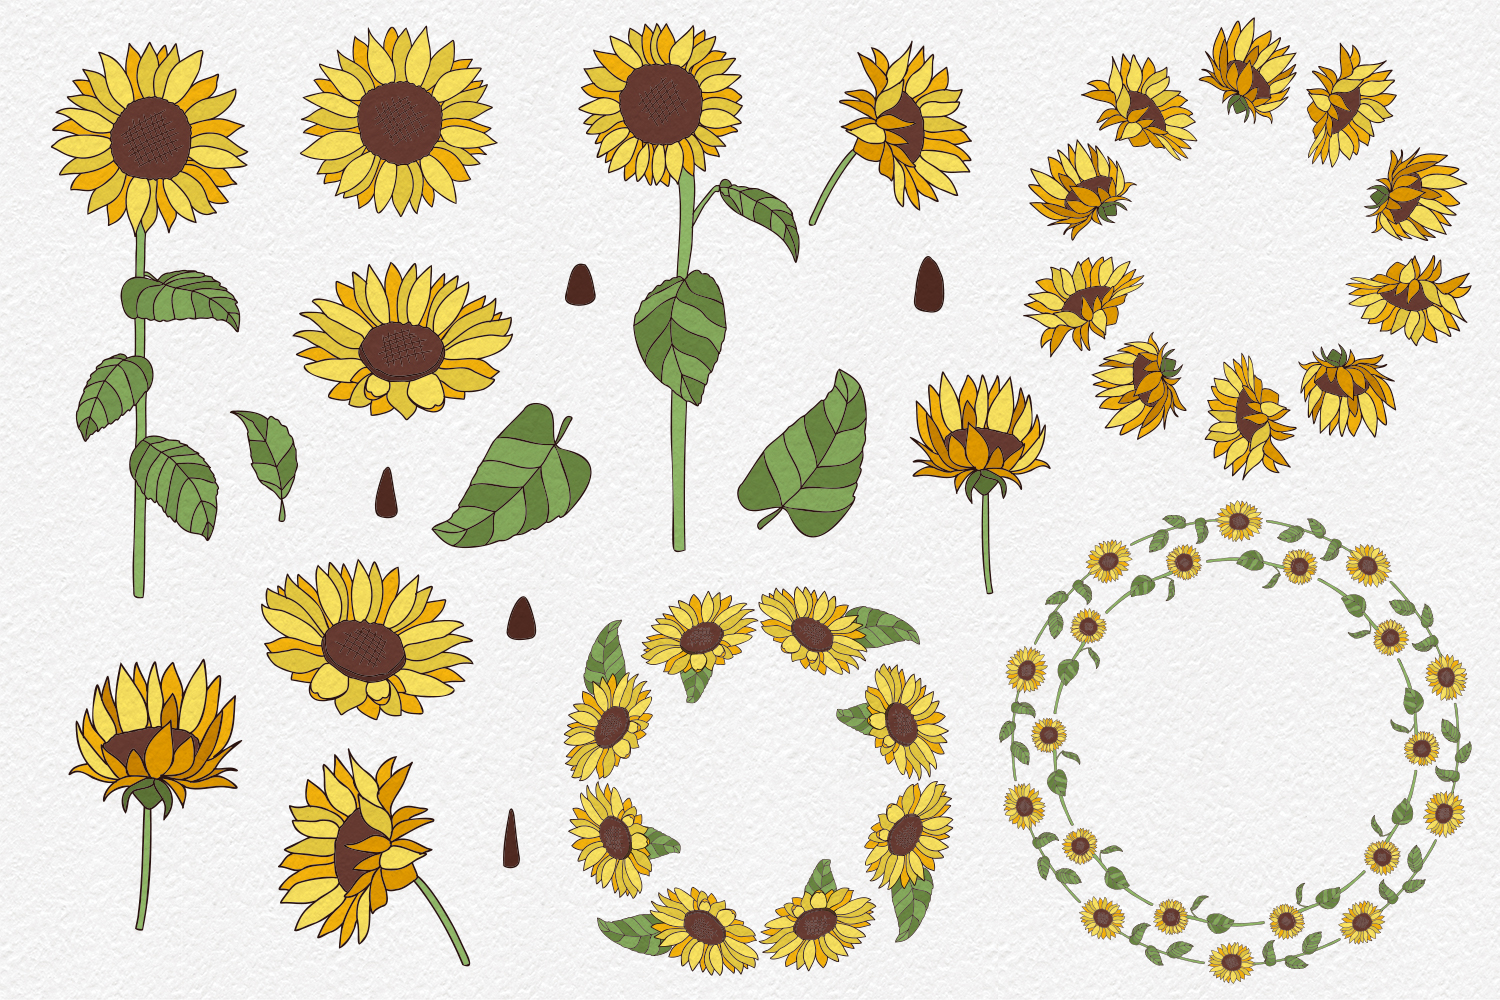 20 Sunflower Clipart Elements example image 2